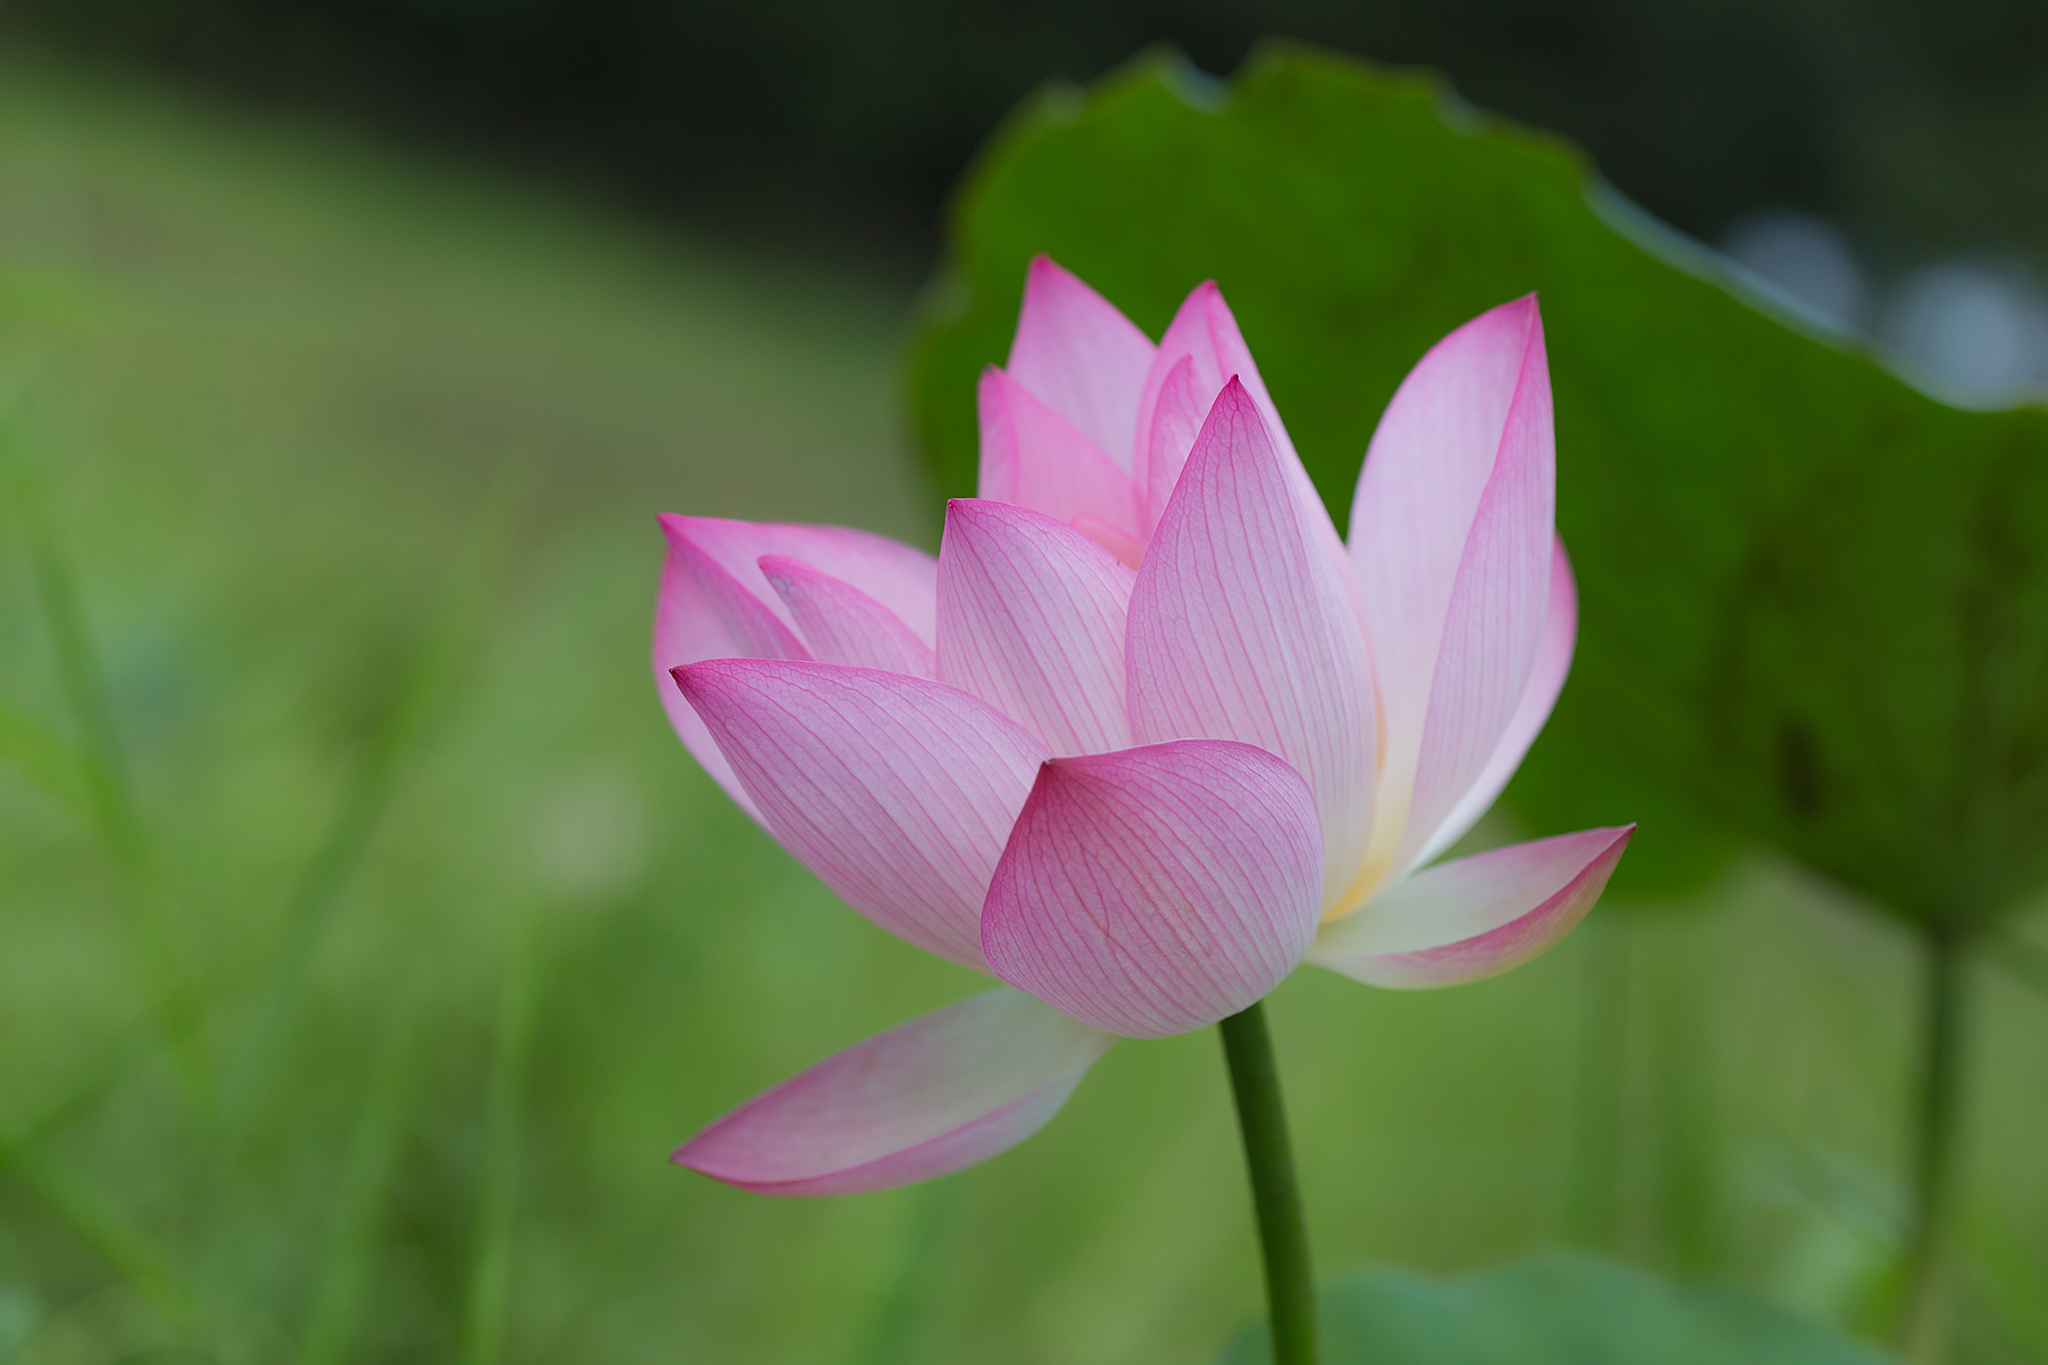 Re lotus flower of the buddha samples and galleries forum digital view original size izmirmasajfo Gallery